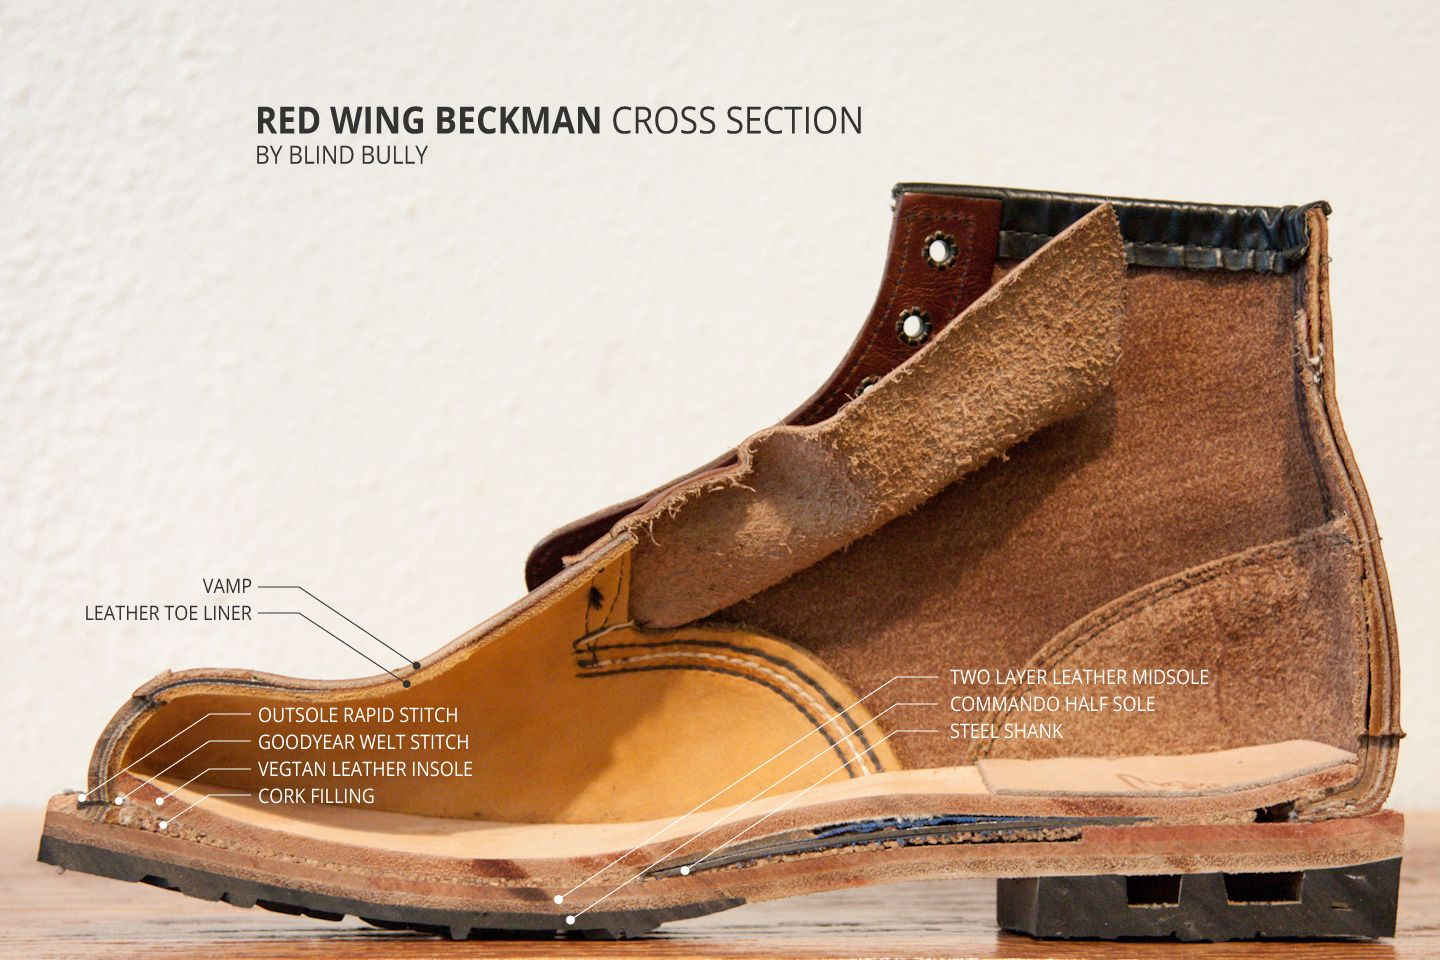 1000  ideas about Red Wing Beckman on Pinterest | Men's boots ...